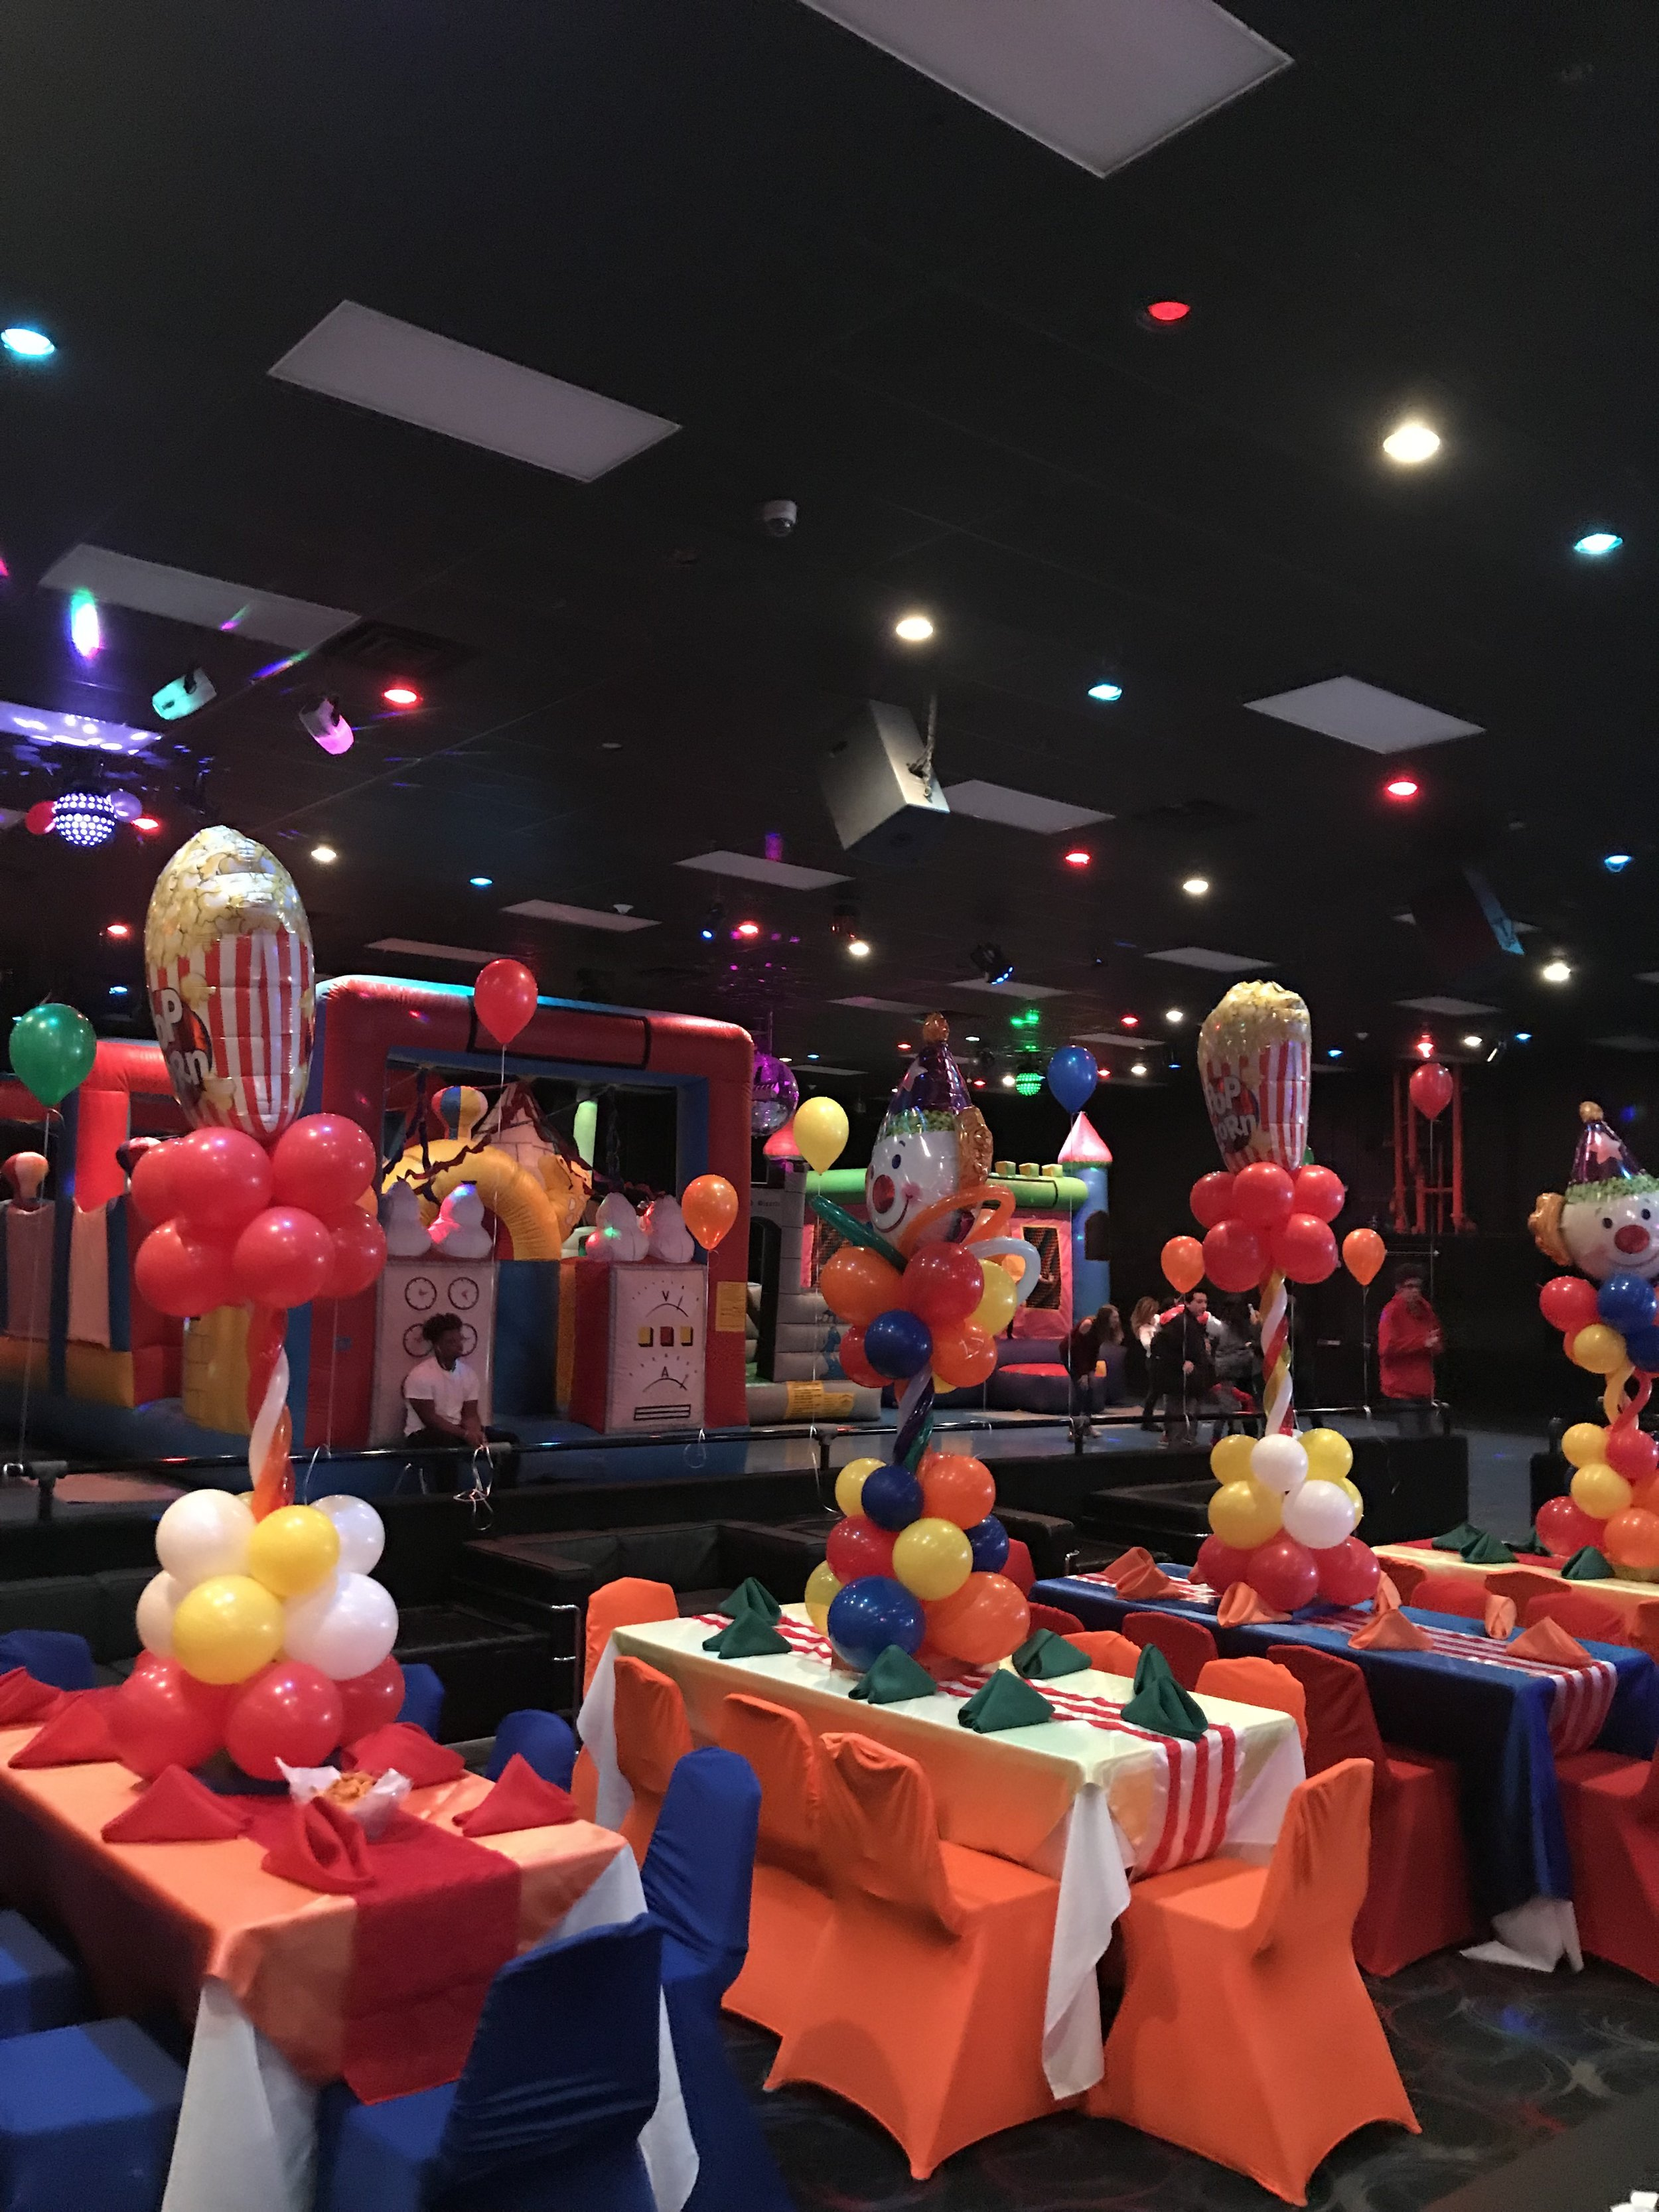 Ultimate Bounce Birthday Party 7.jpeg